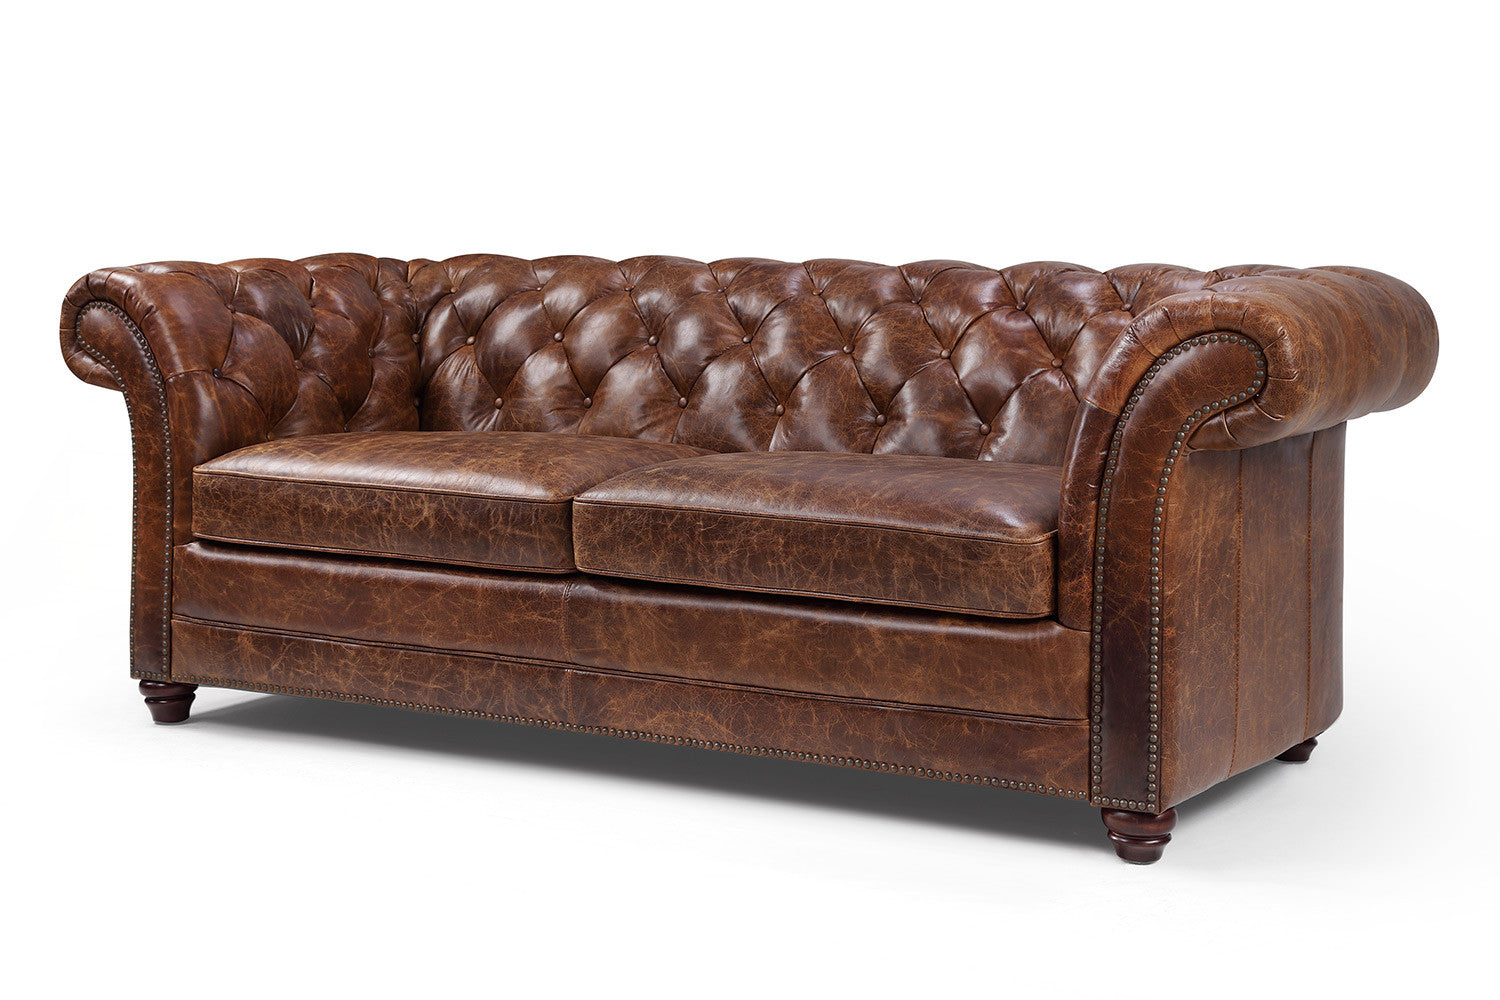 Leather Sofas | Rose and Moore